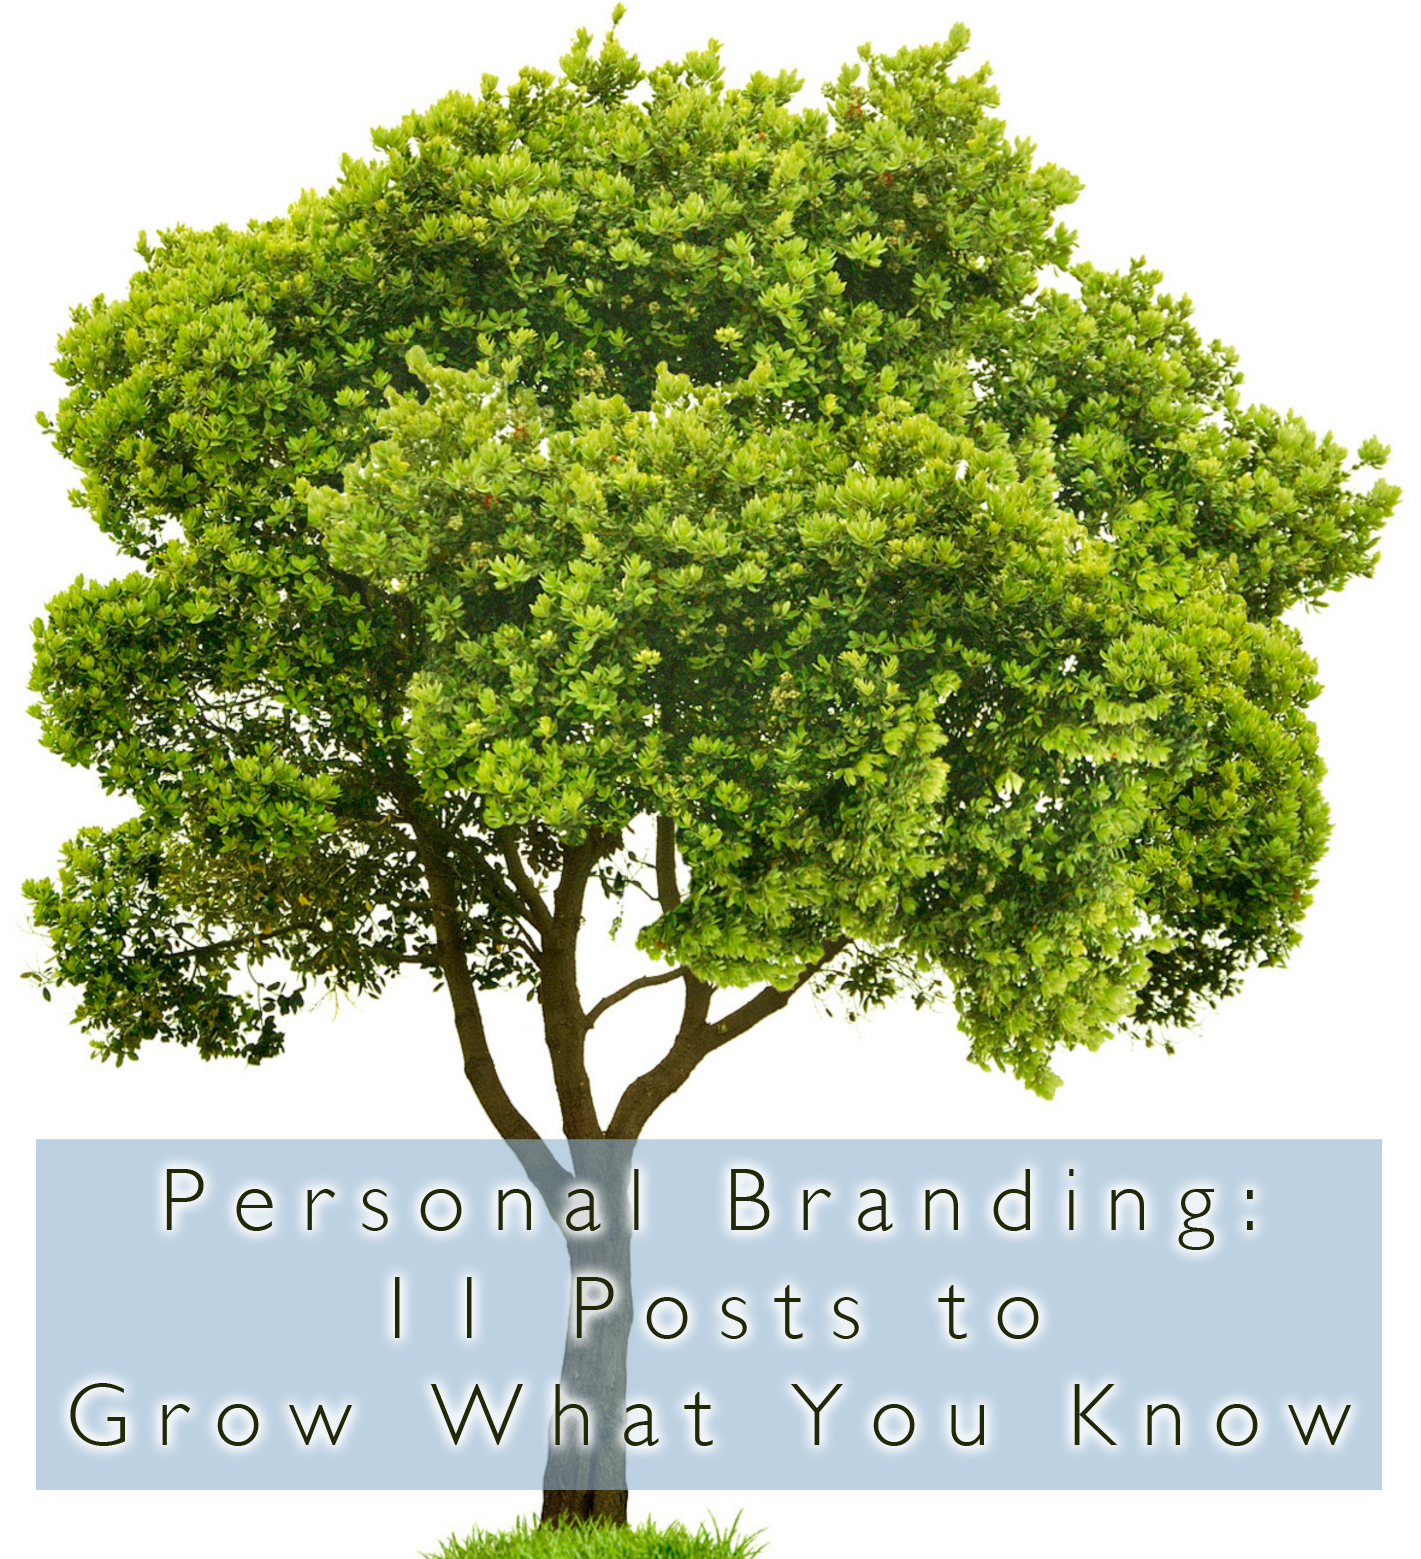 Personal Branding- Top 11 Tips to Grow What You Know